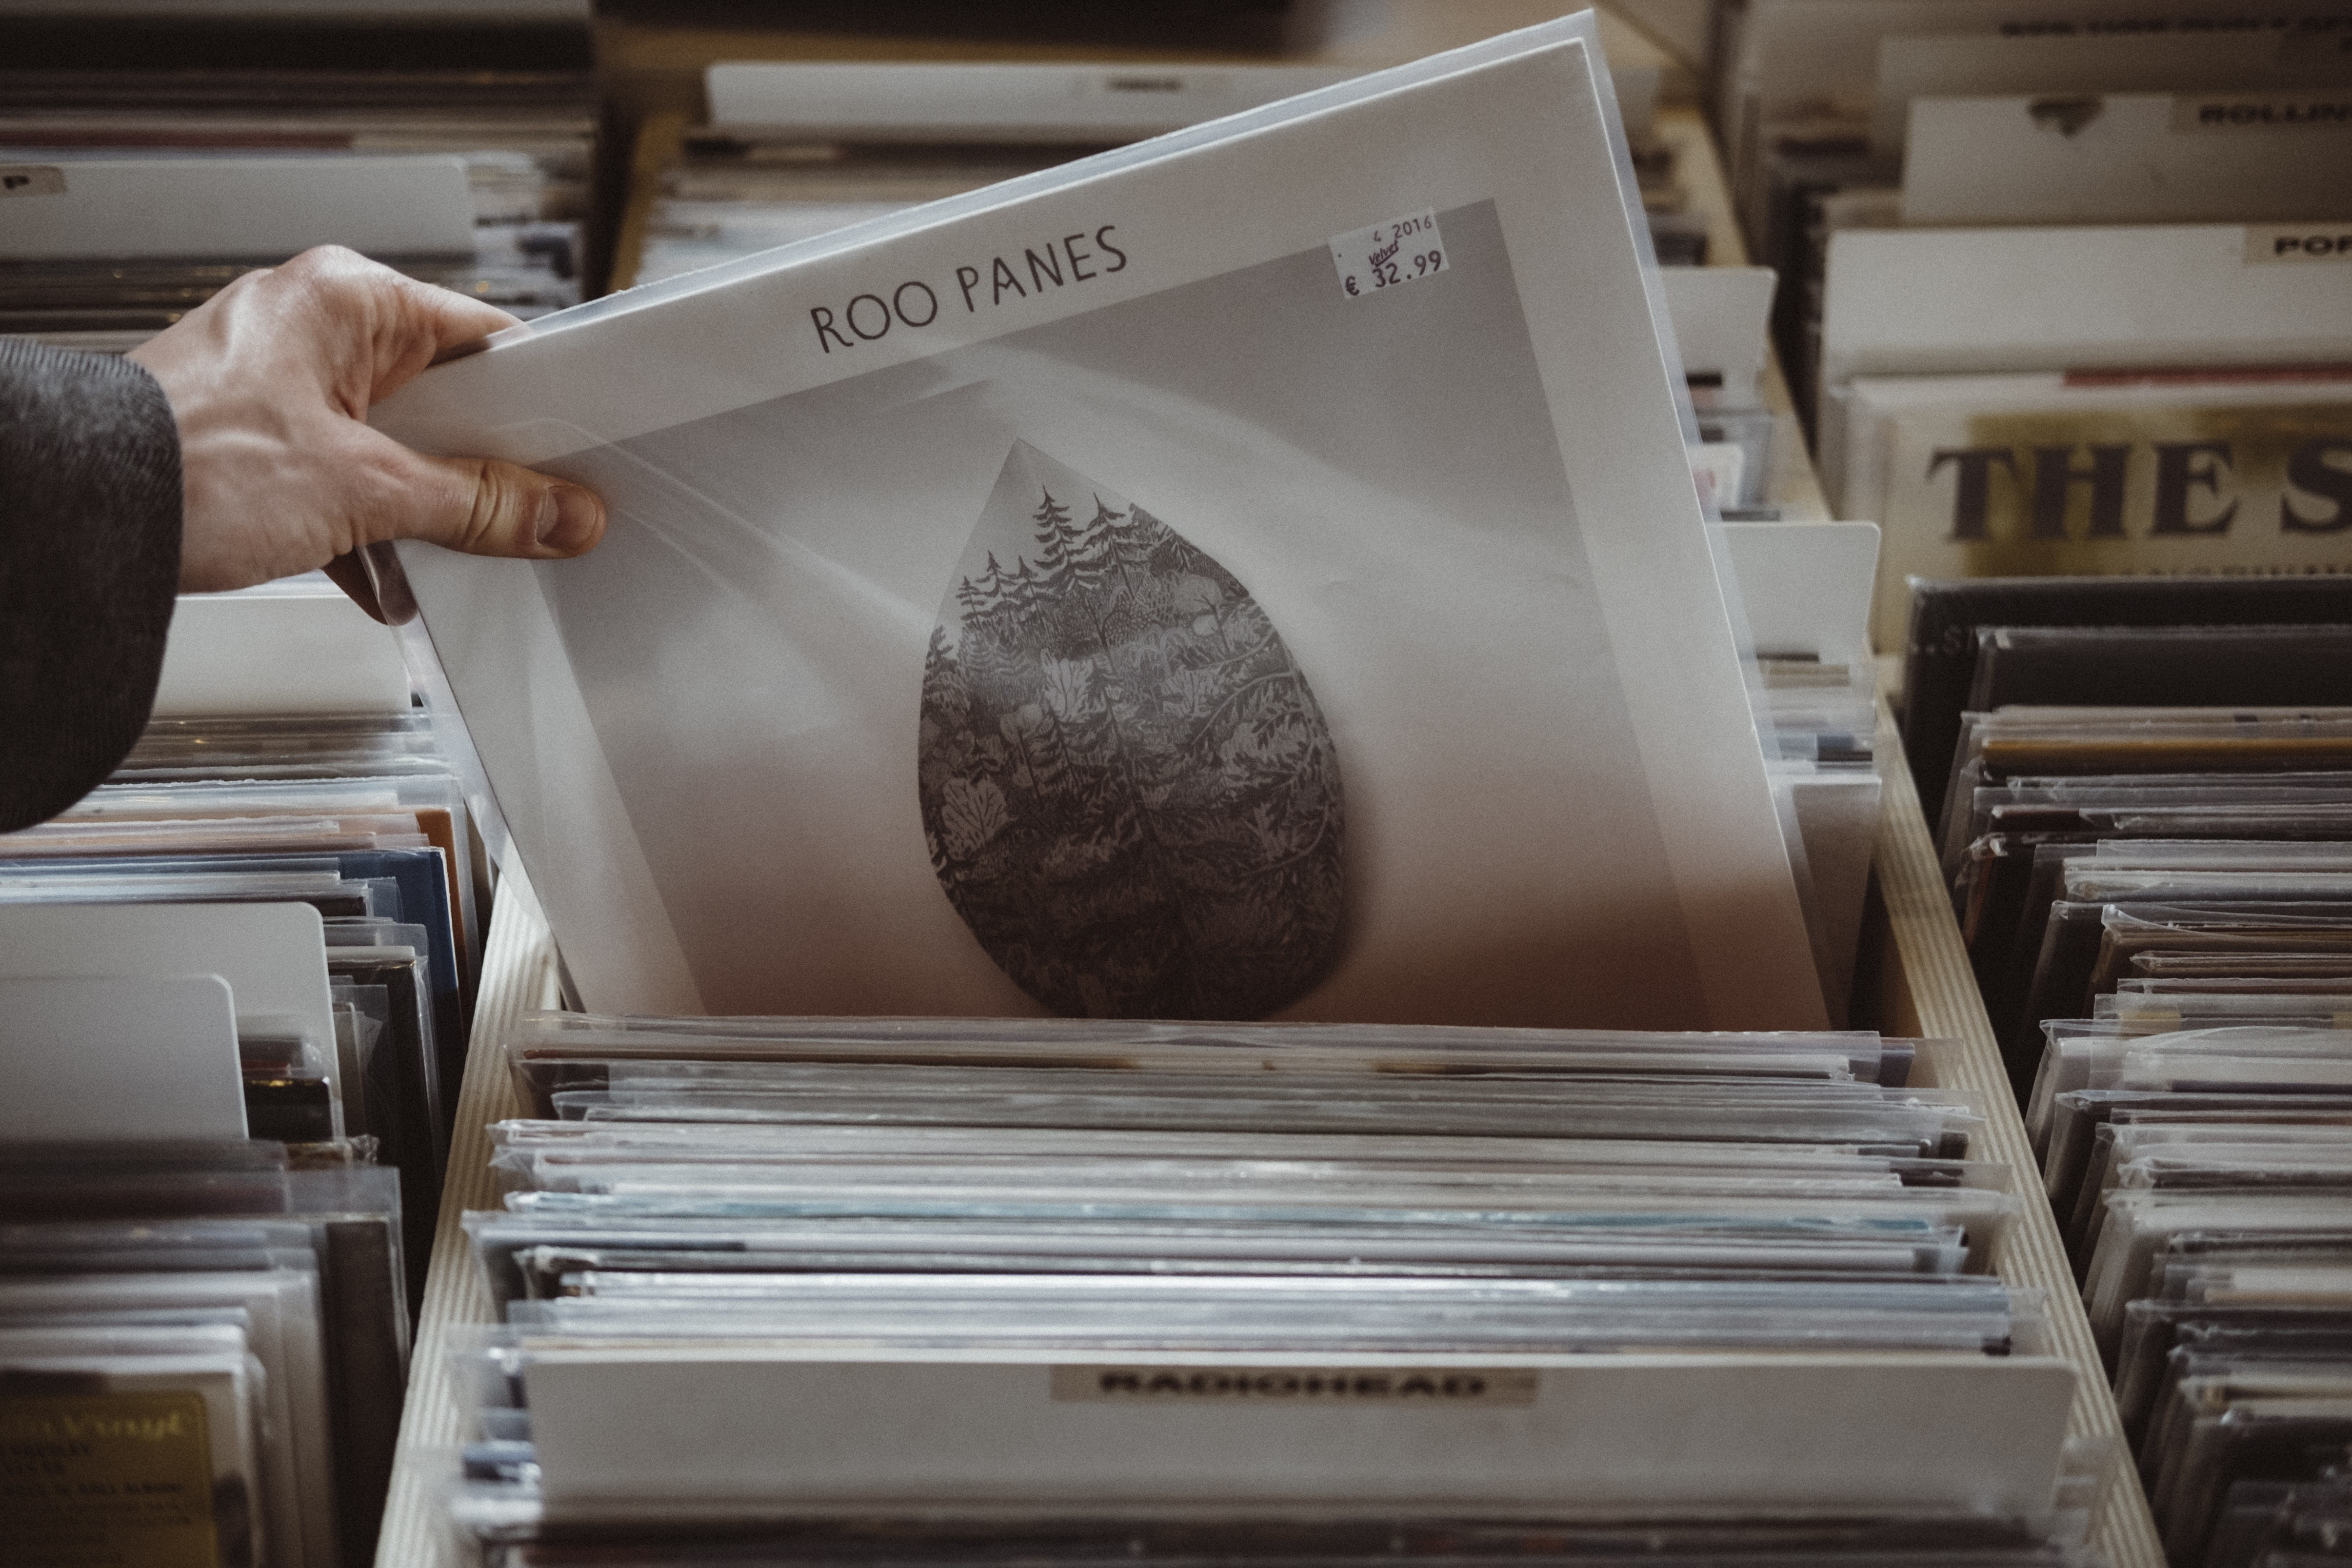 A person picking out a Roo Panes vinyl record in a record store